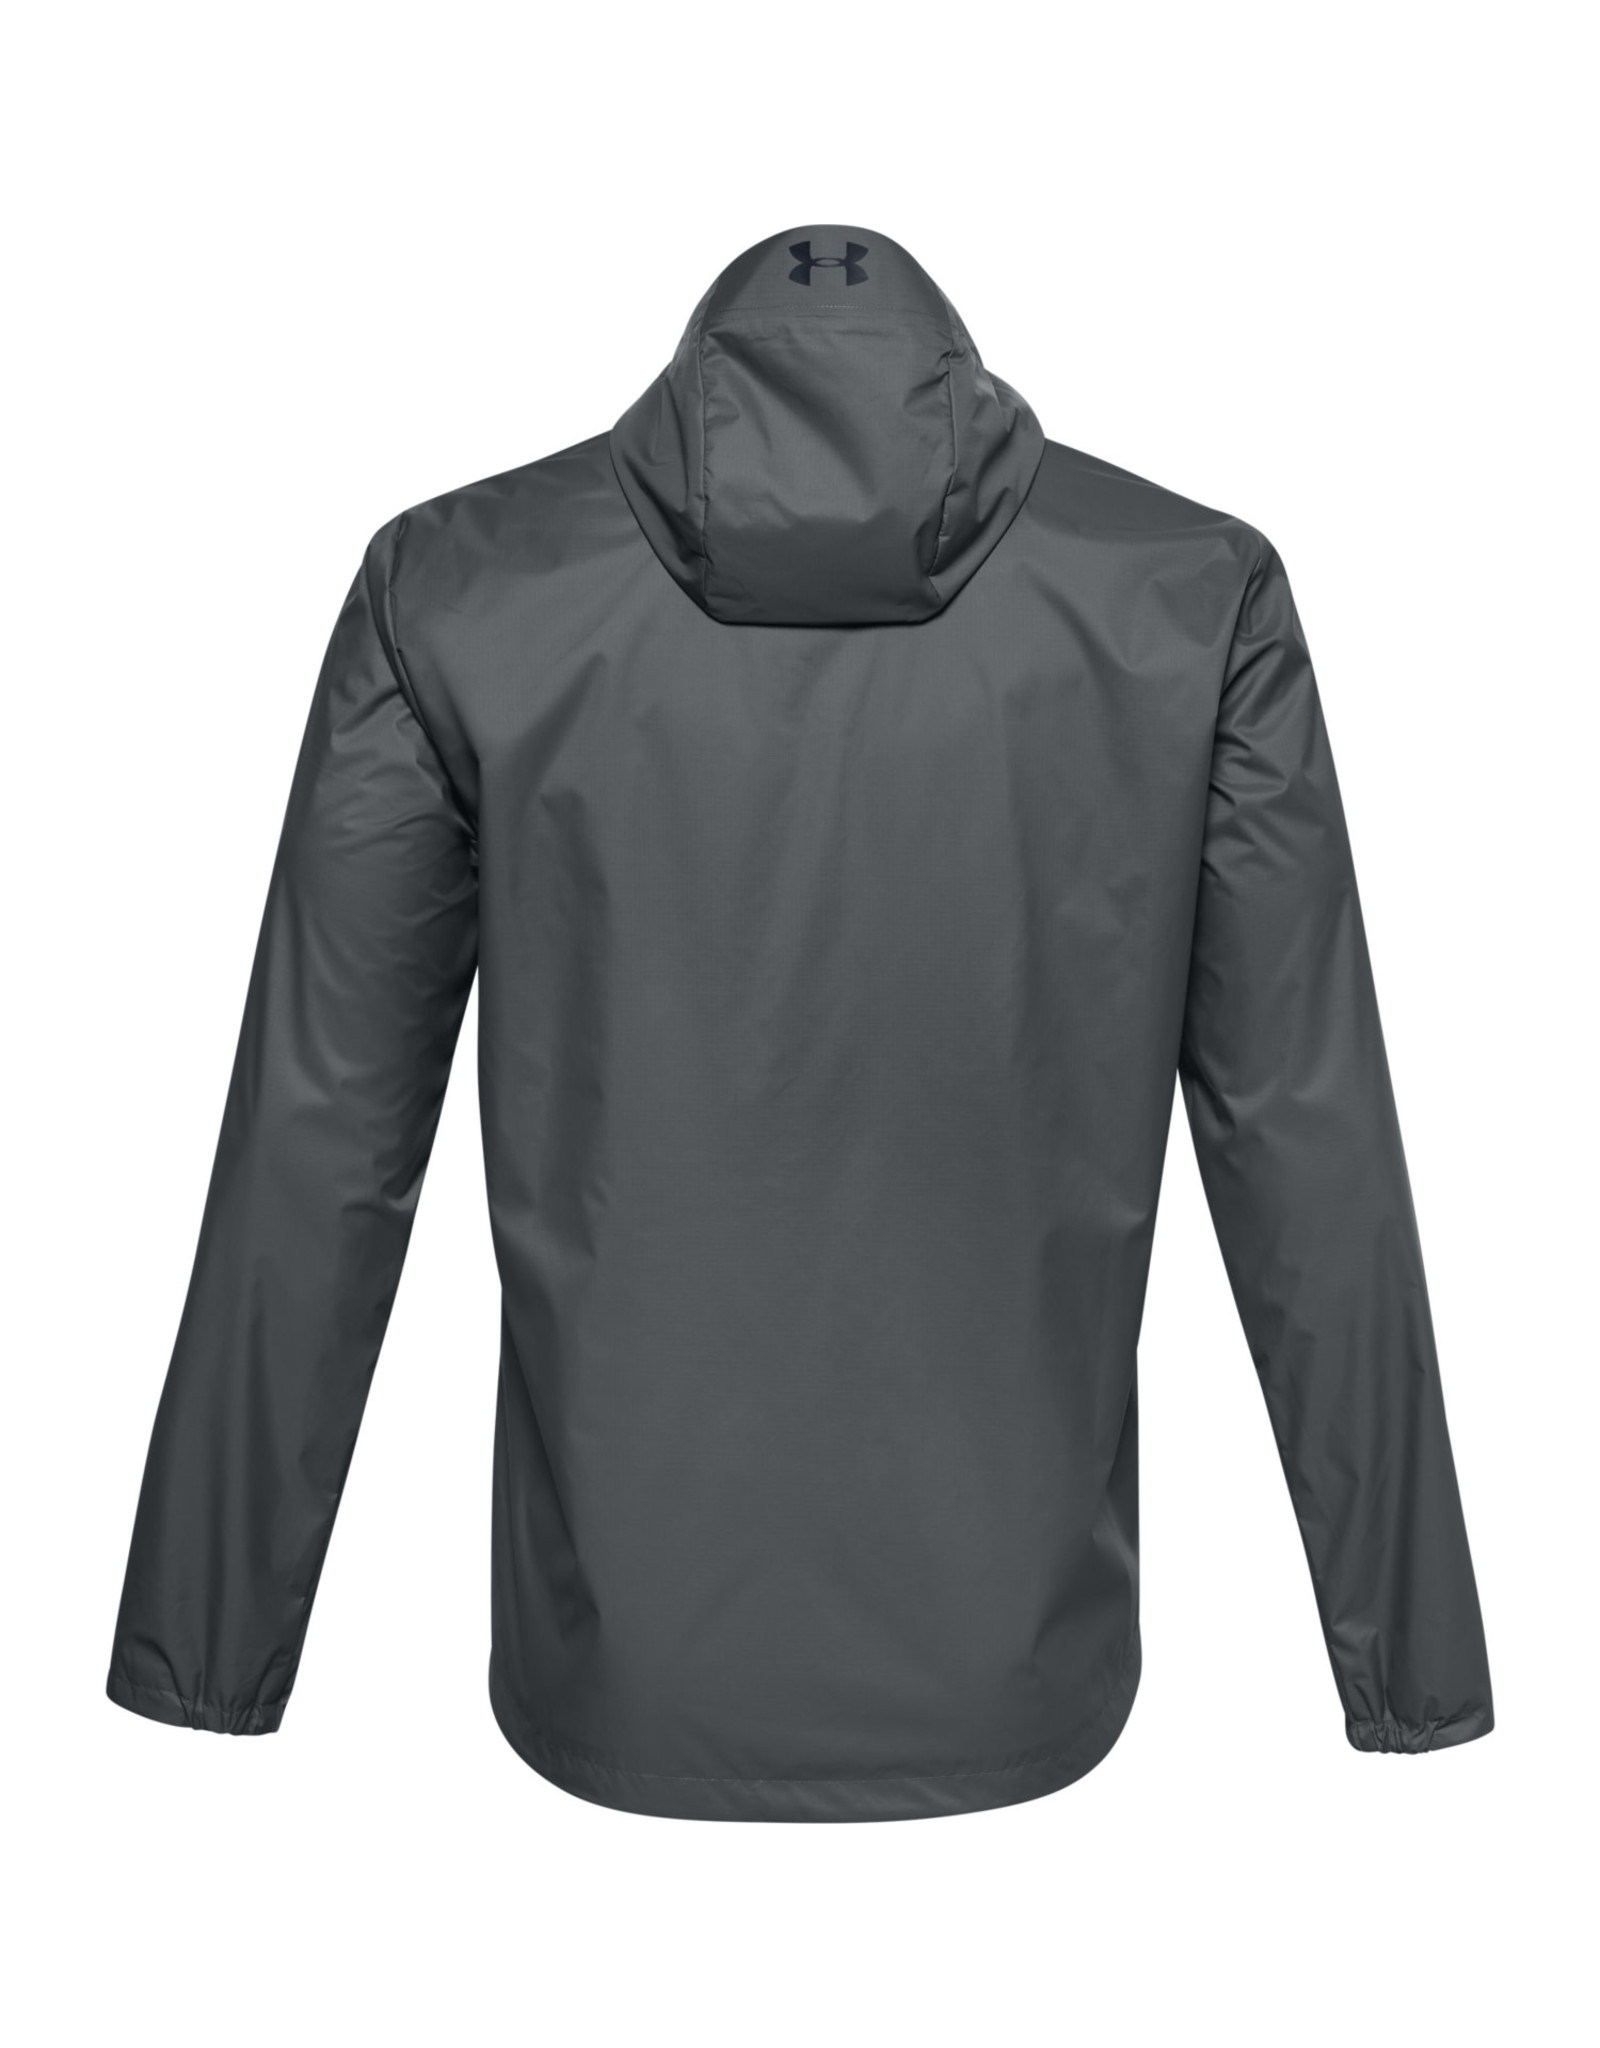 Under Armour UA Forefront Rain Jacket - Pitch Gray--Black